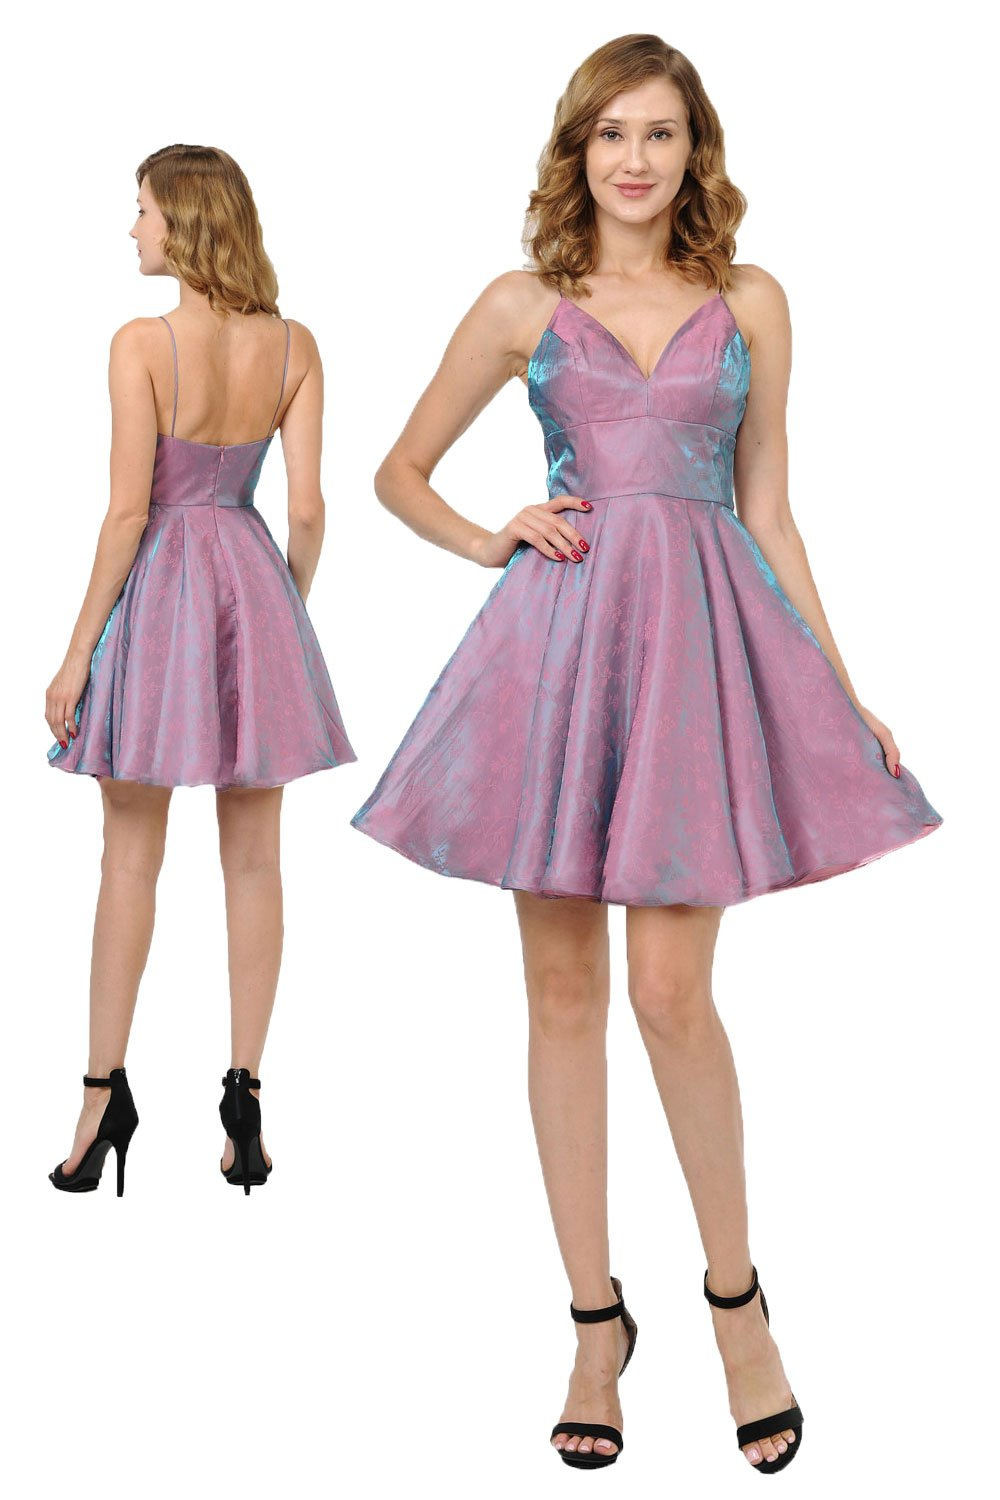 A-line Mauve/Teal two-tone short homecoming dress